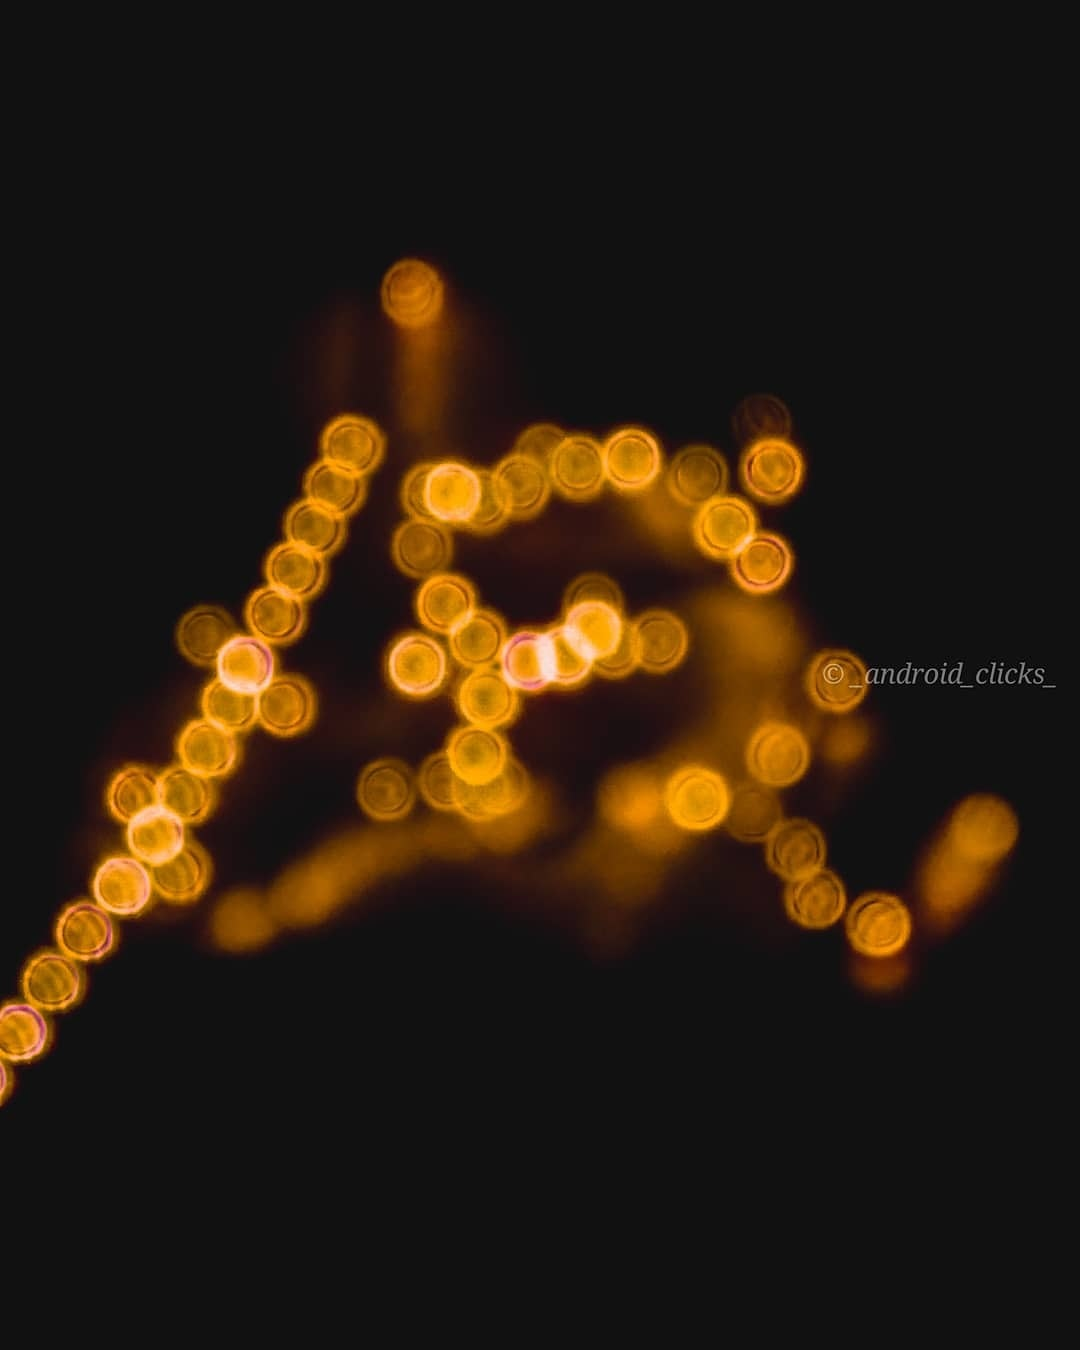 GOLDEN-BOKEH⚡ by _android_clicks_